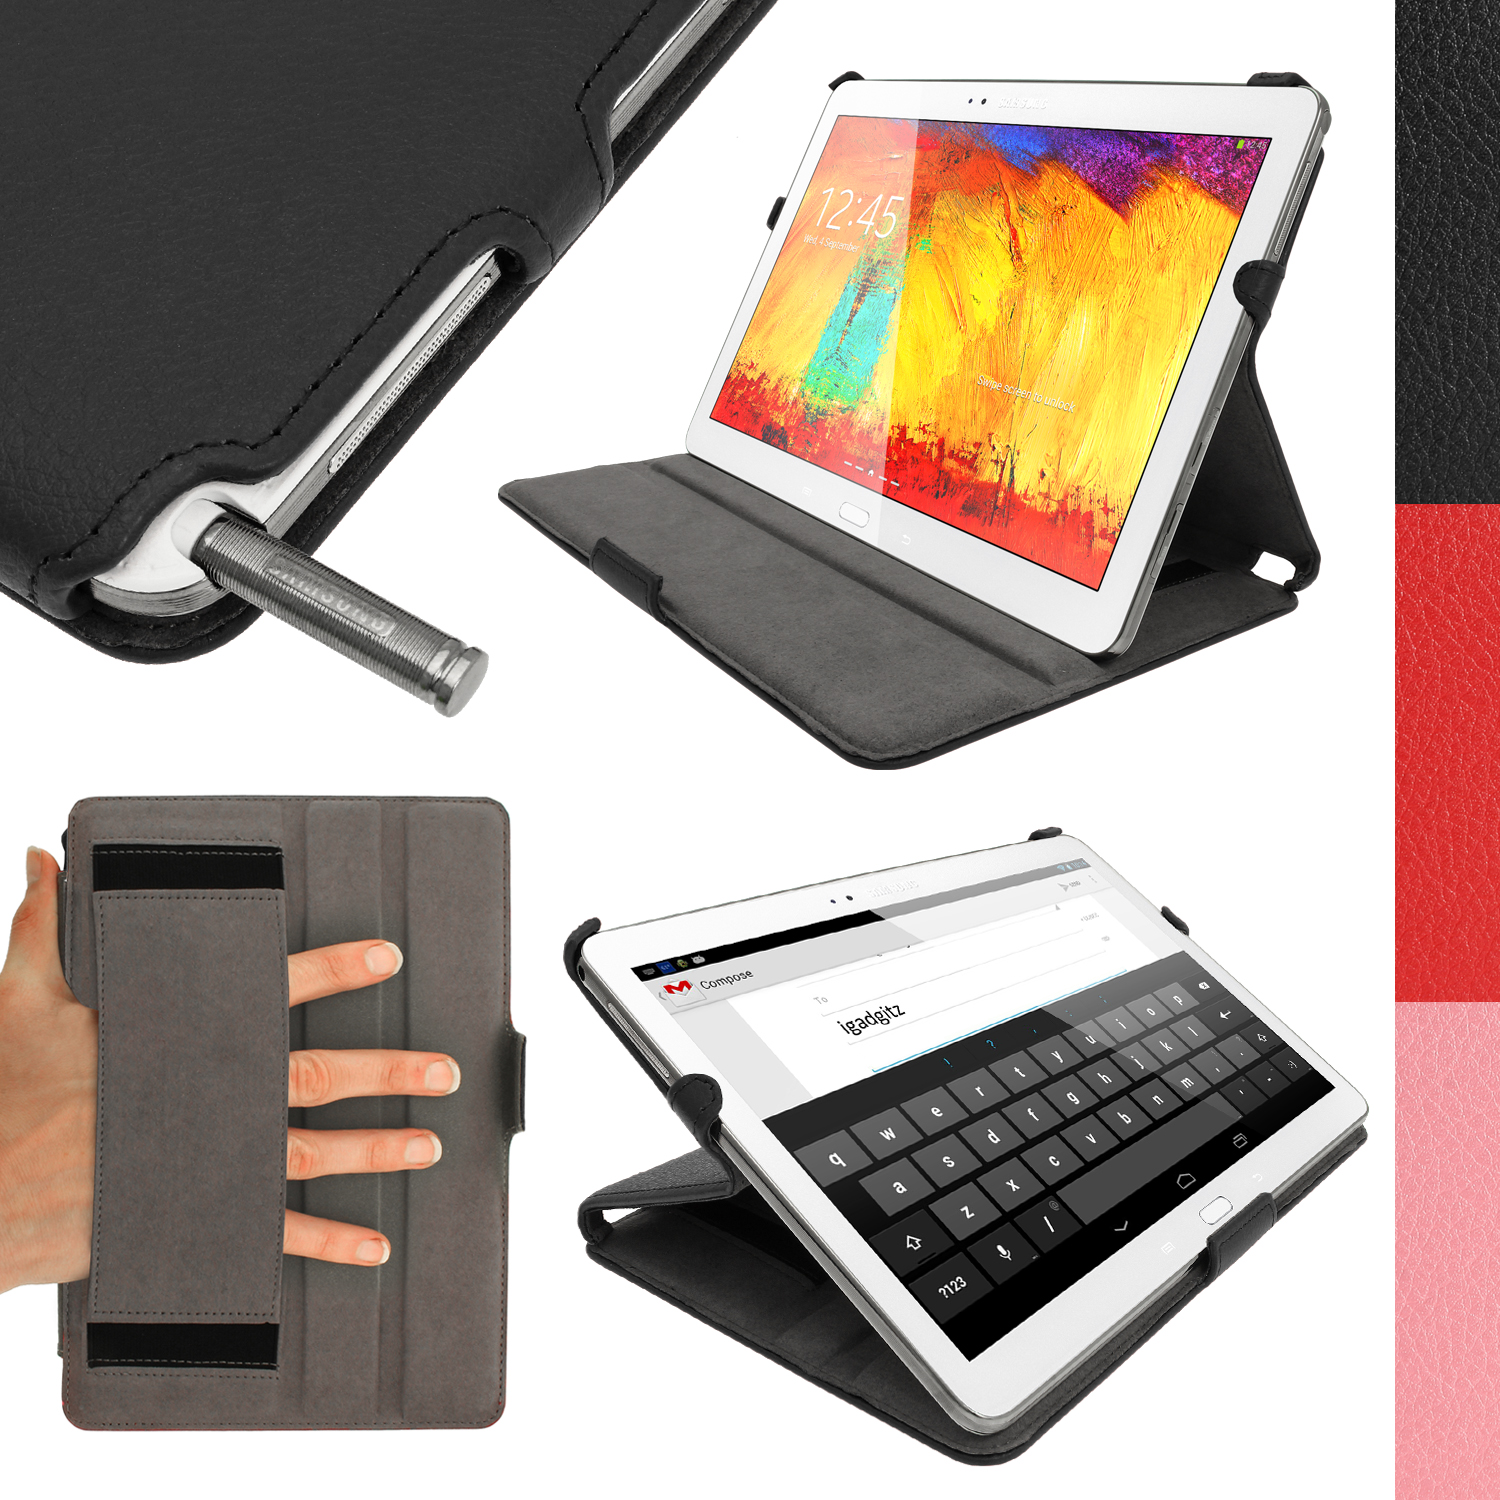 "iGadgitz PU Leather Case for Samsung Galaxy Note 10.1"" P600 P601 & Tab Pro 10.1"" T520 T525 Sleep/Wake + Screen Protector"